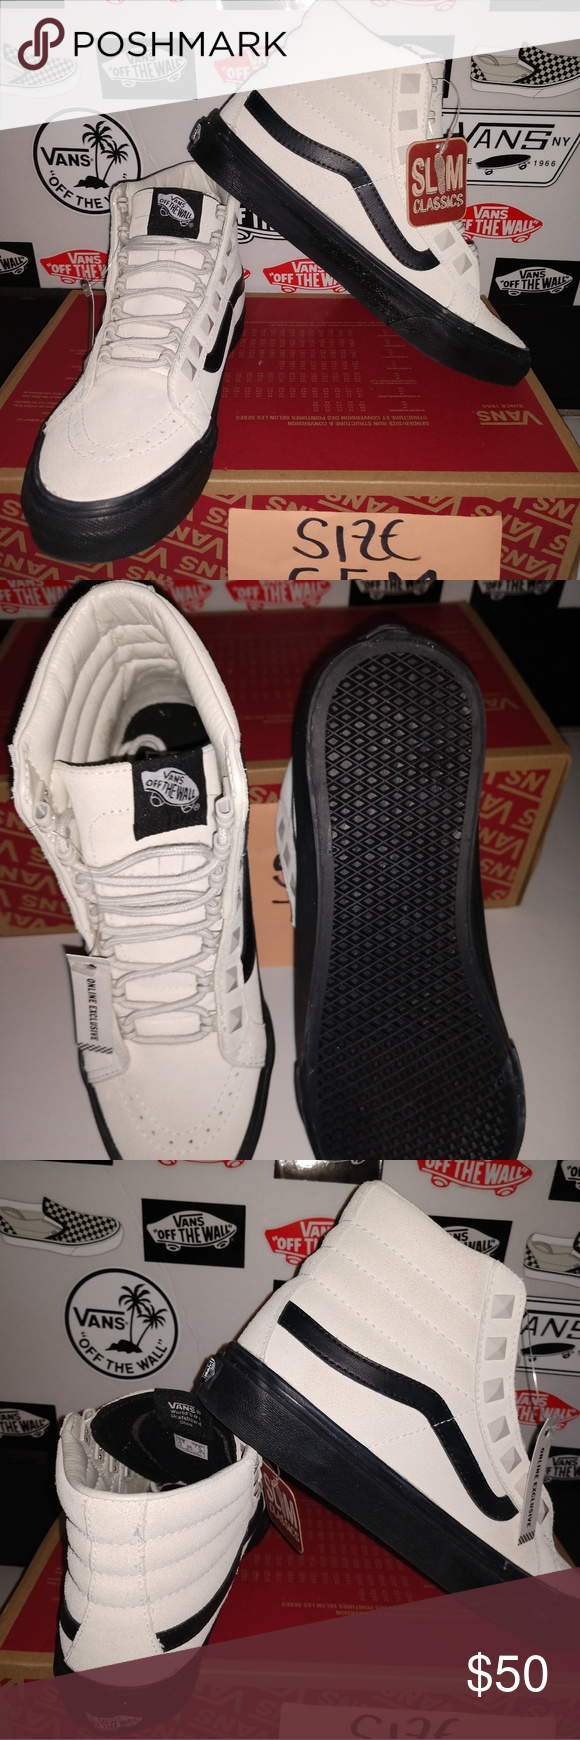 919d32dada8 VANS SK8-HI SLIM SIZE 5.5 MEN S 7.0 WOMAN S BRAND NEW AUTHENTIC VANS WITH  BOX AND STICKERS ATTACHED SAME DAY SHIPPING (studs) marshmallow black color  100% ...